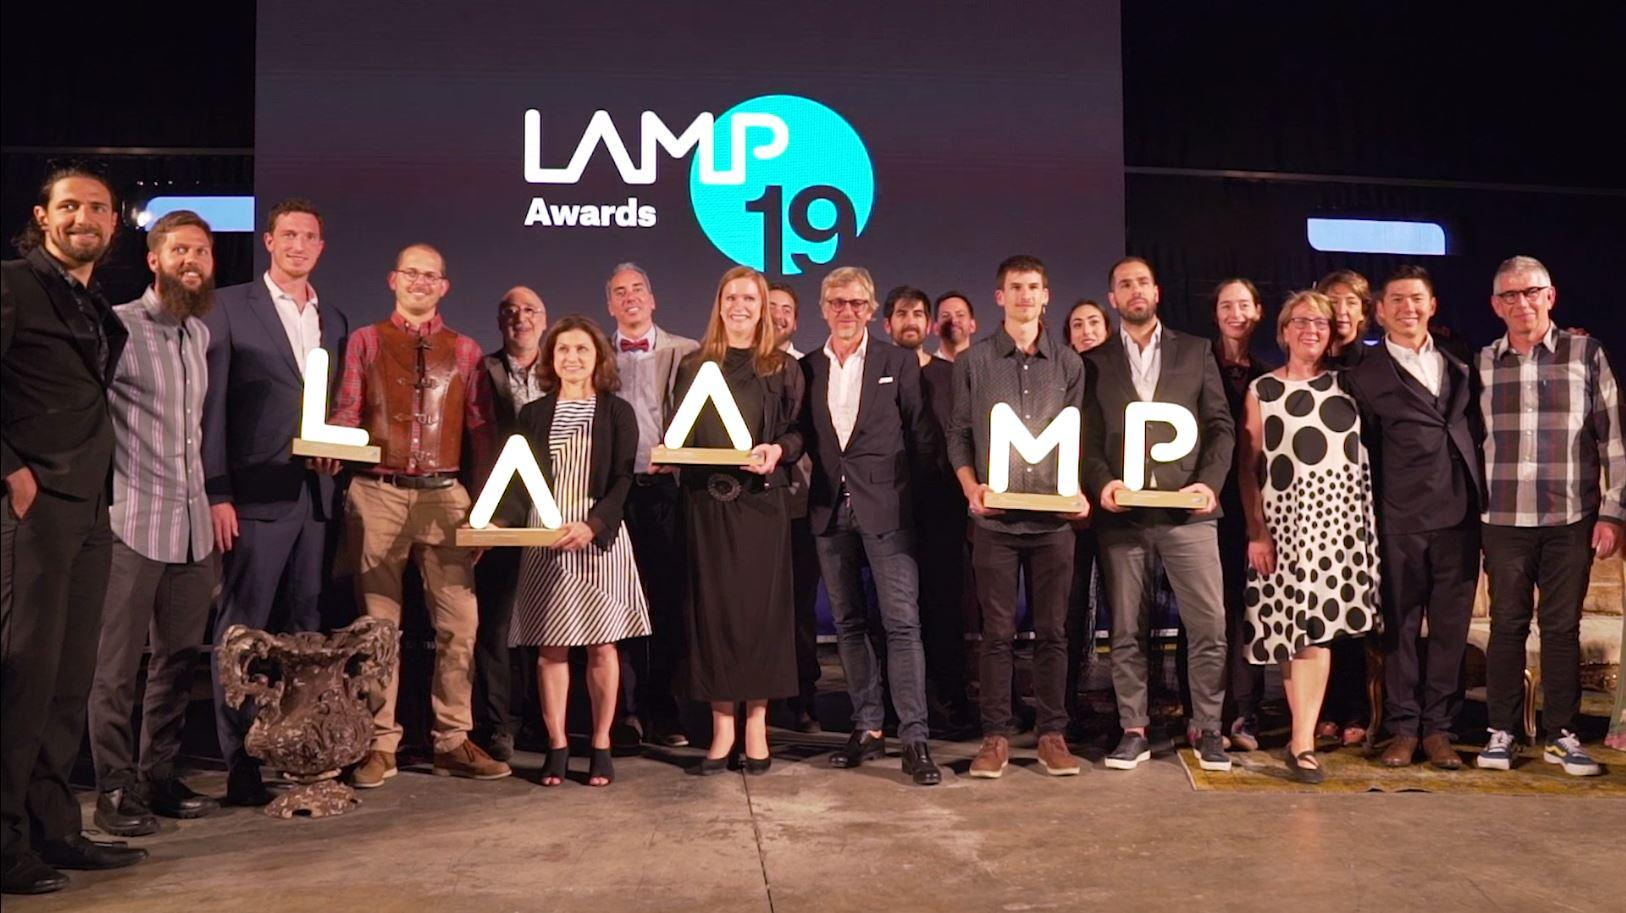 lamp awards 2019 winners video